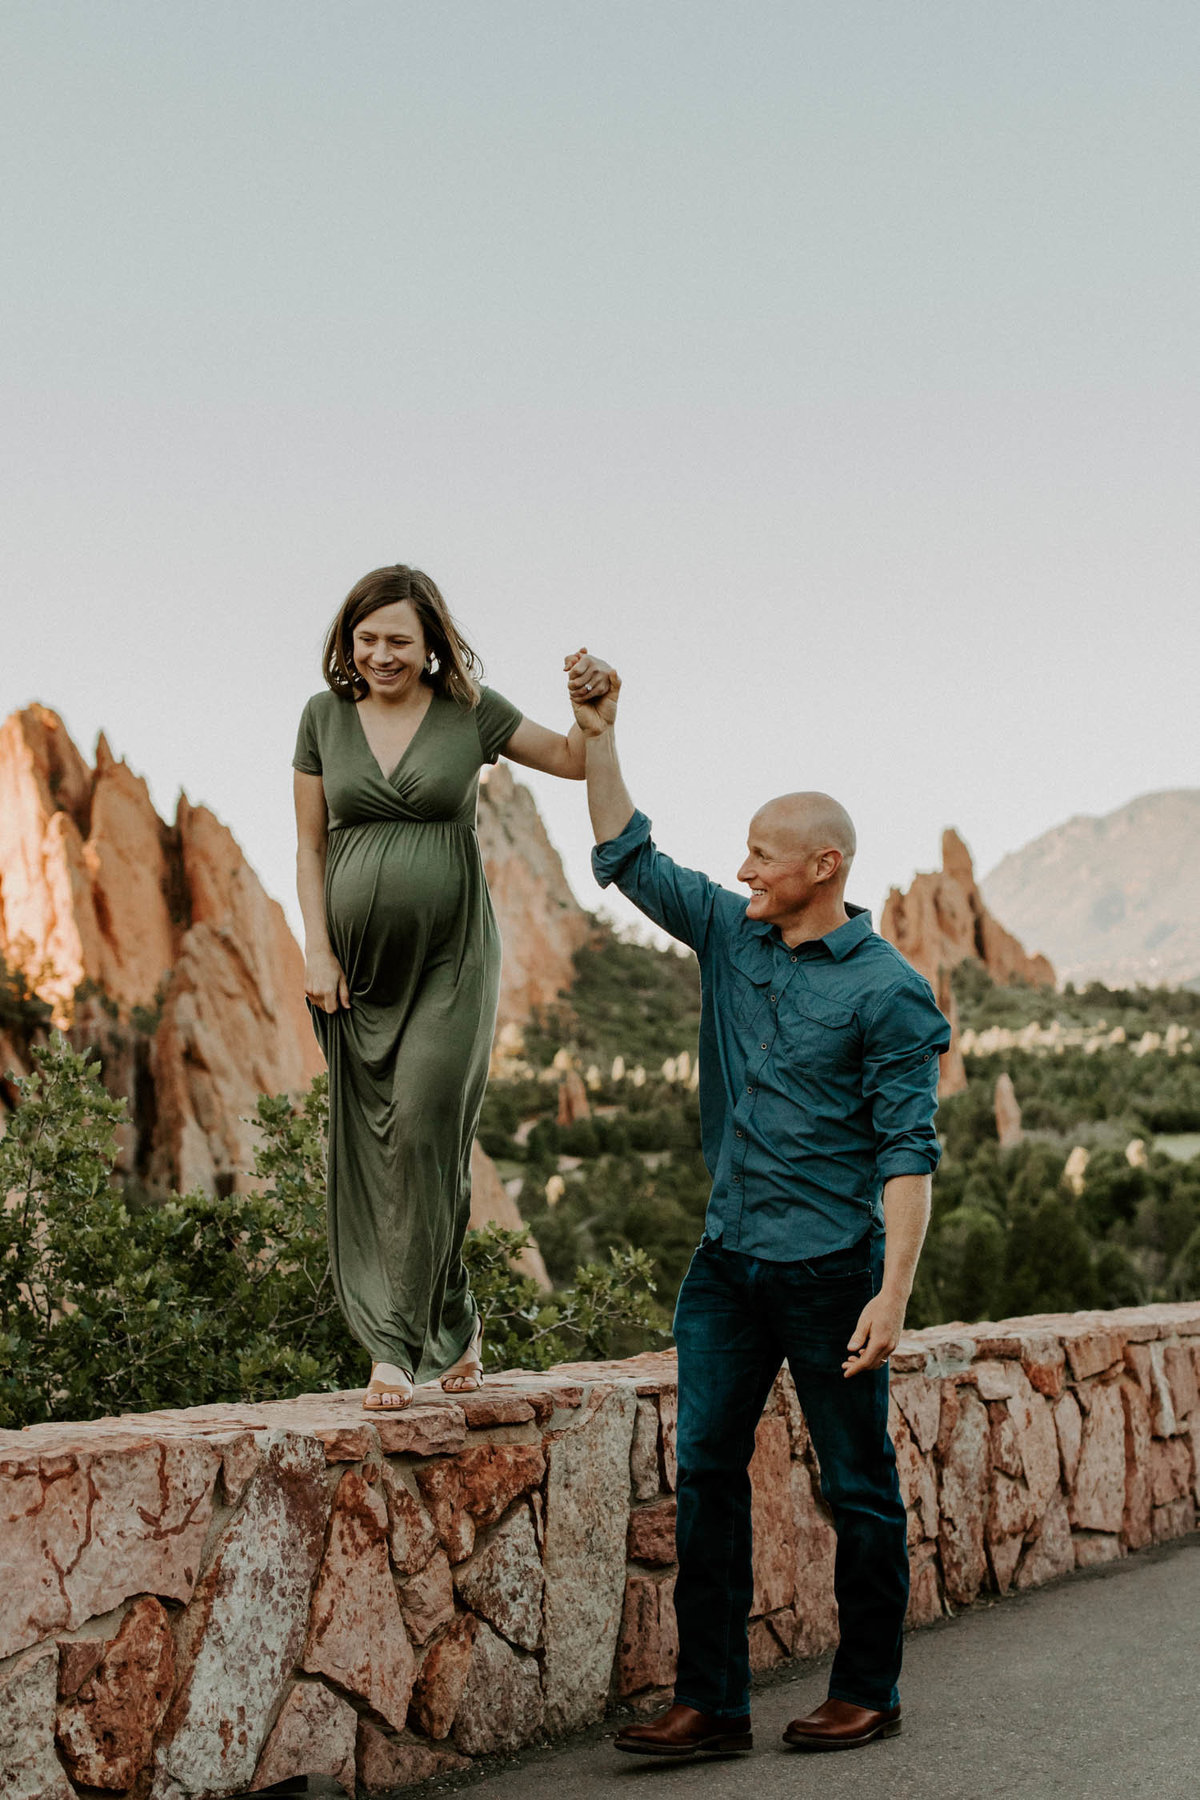 colorado-springs-garden-of-the-gods-sunrise-couples-adventure-session-colorado-elopement-photographer-6